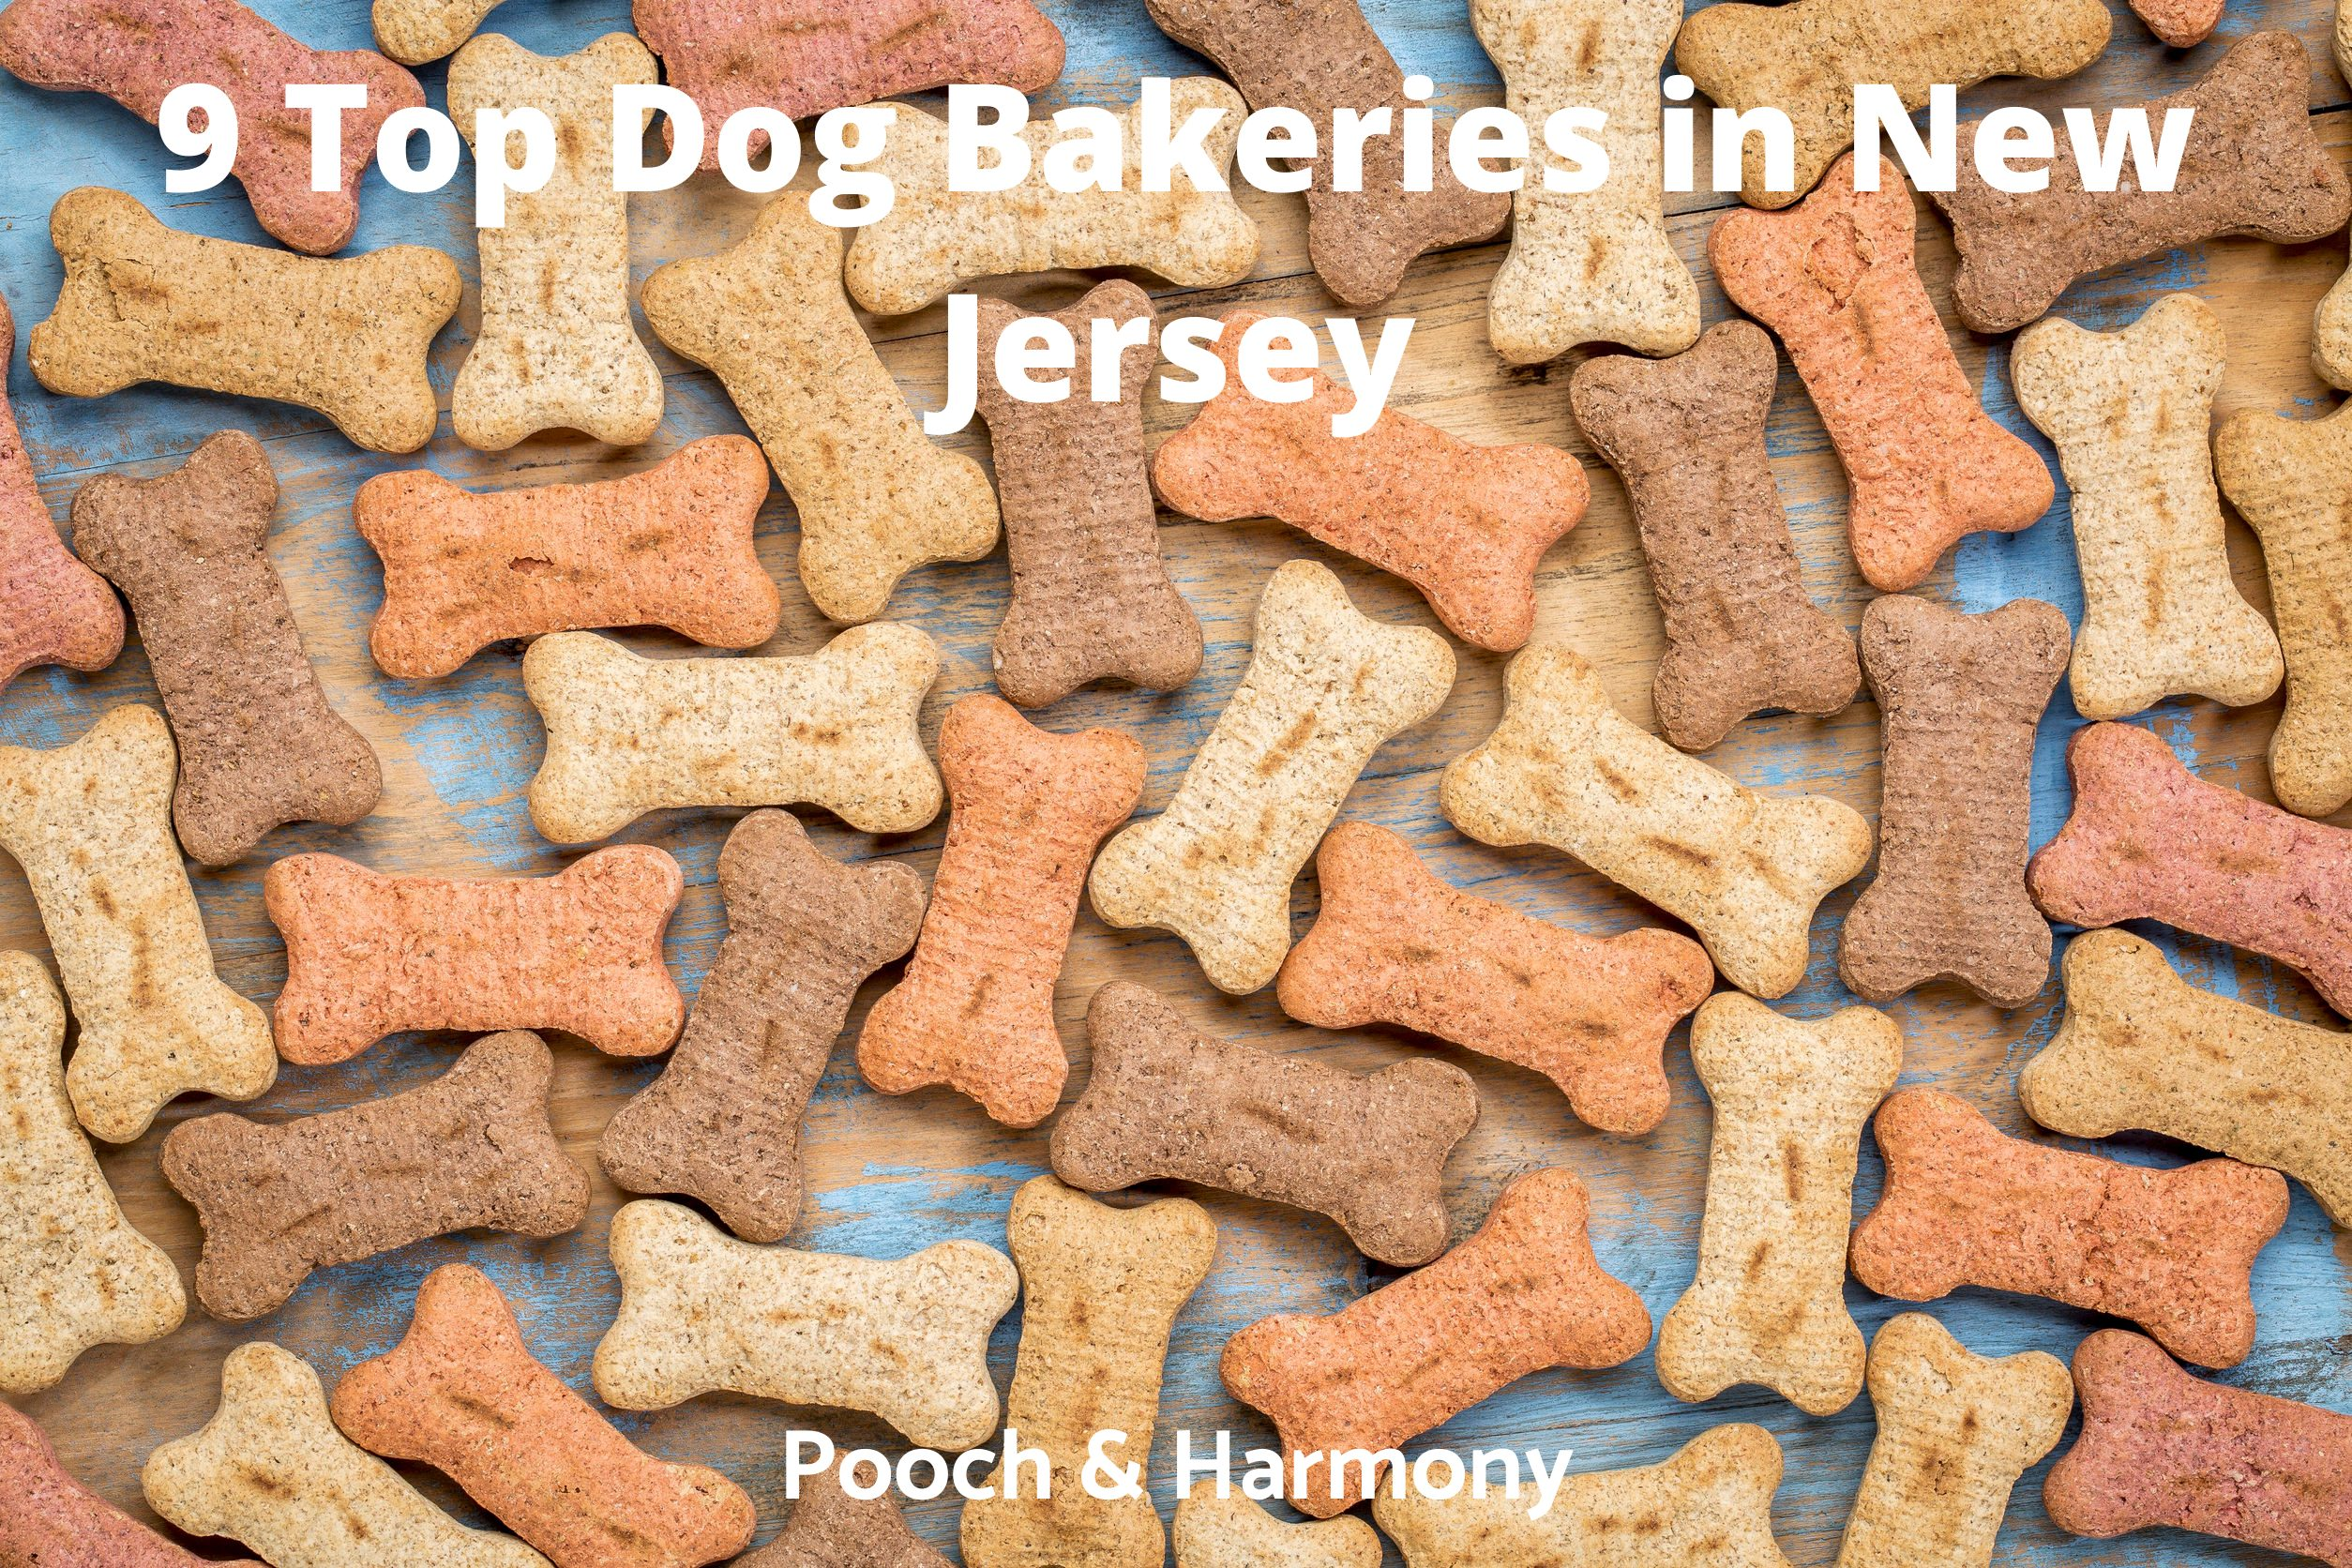 Dog Bakeries in New Jersey